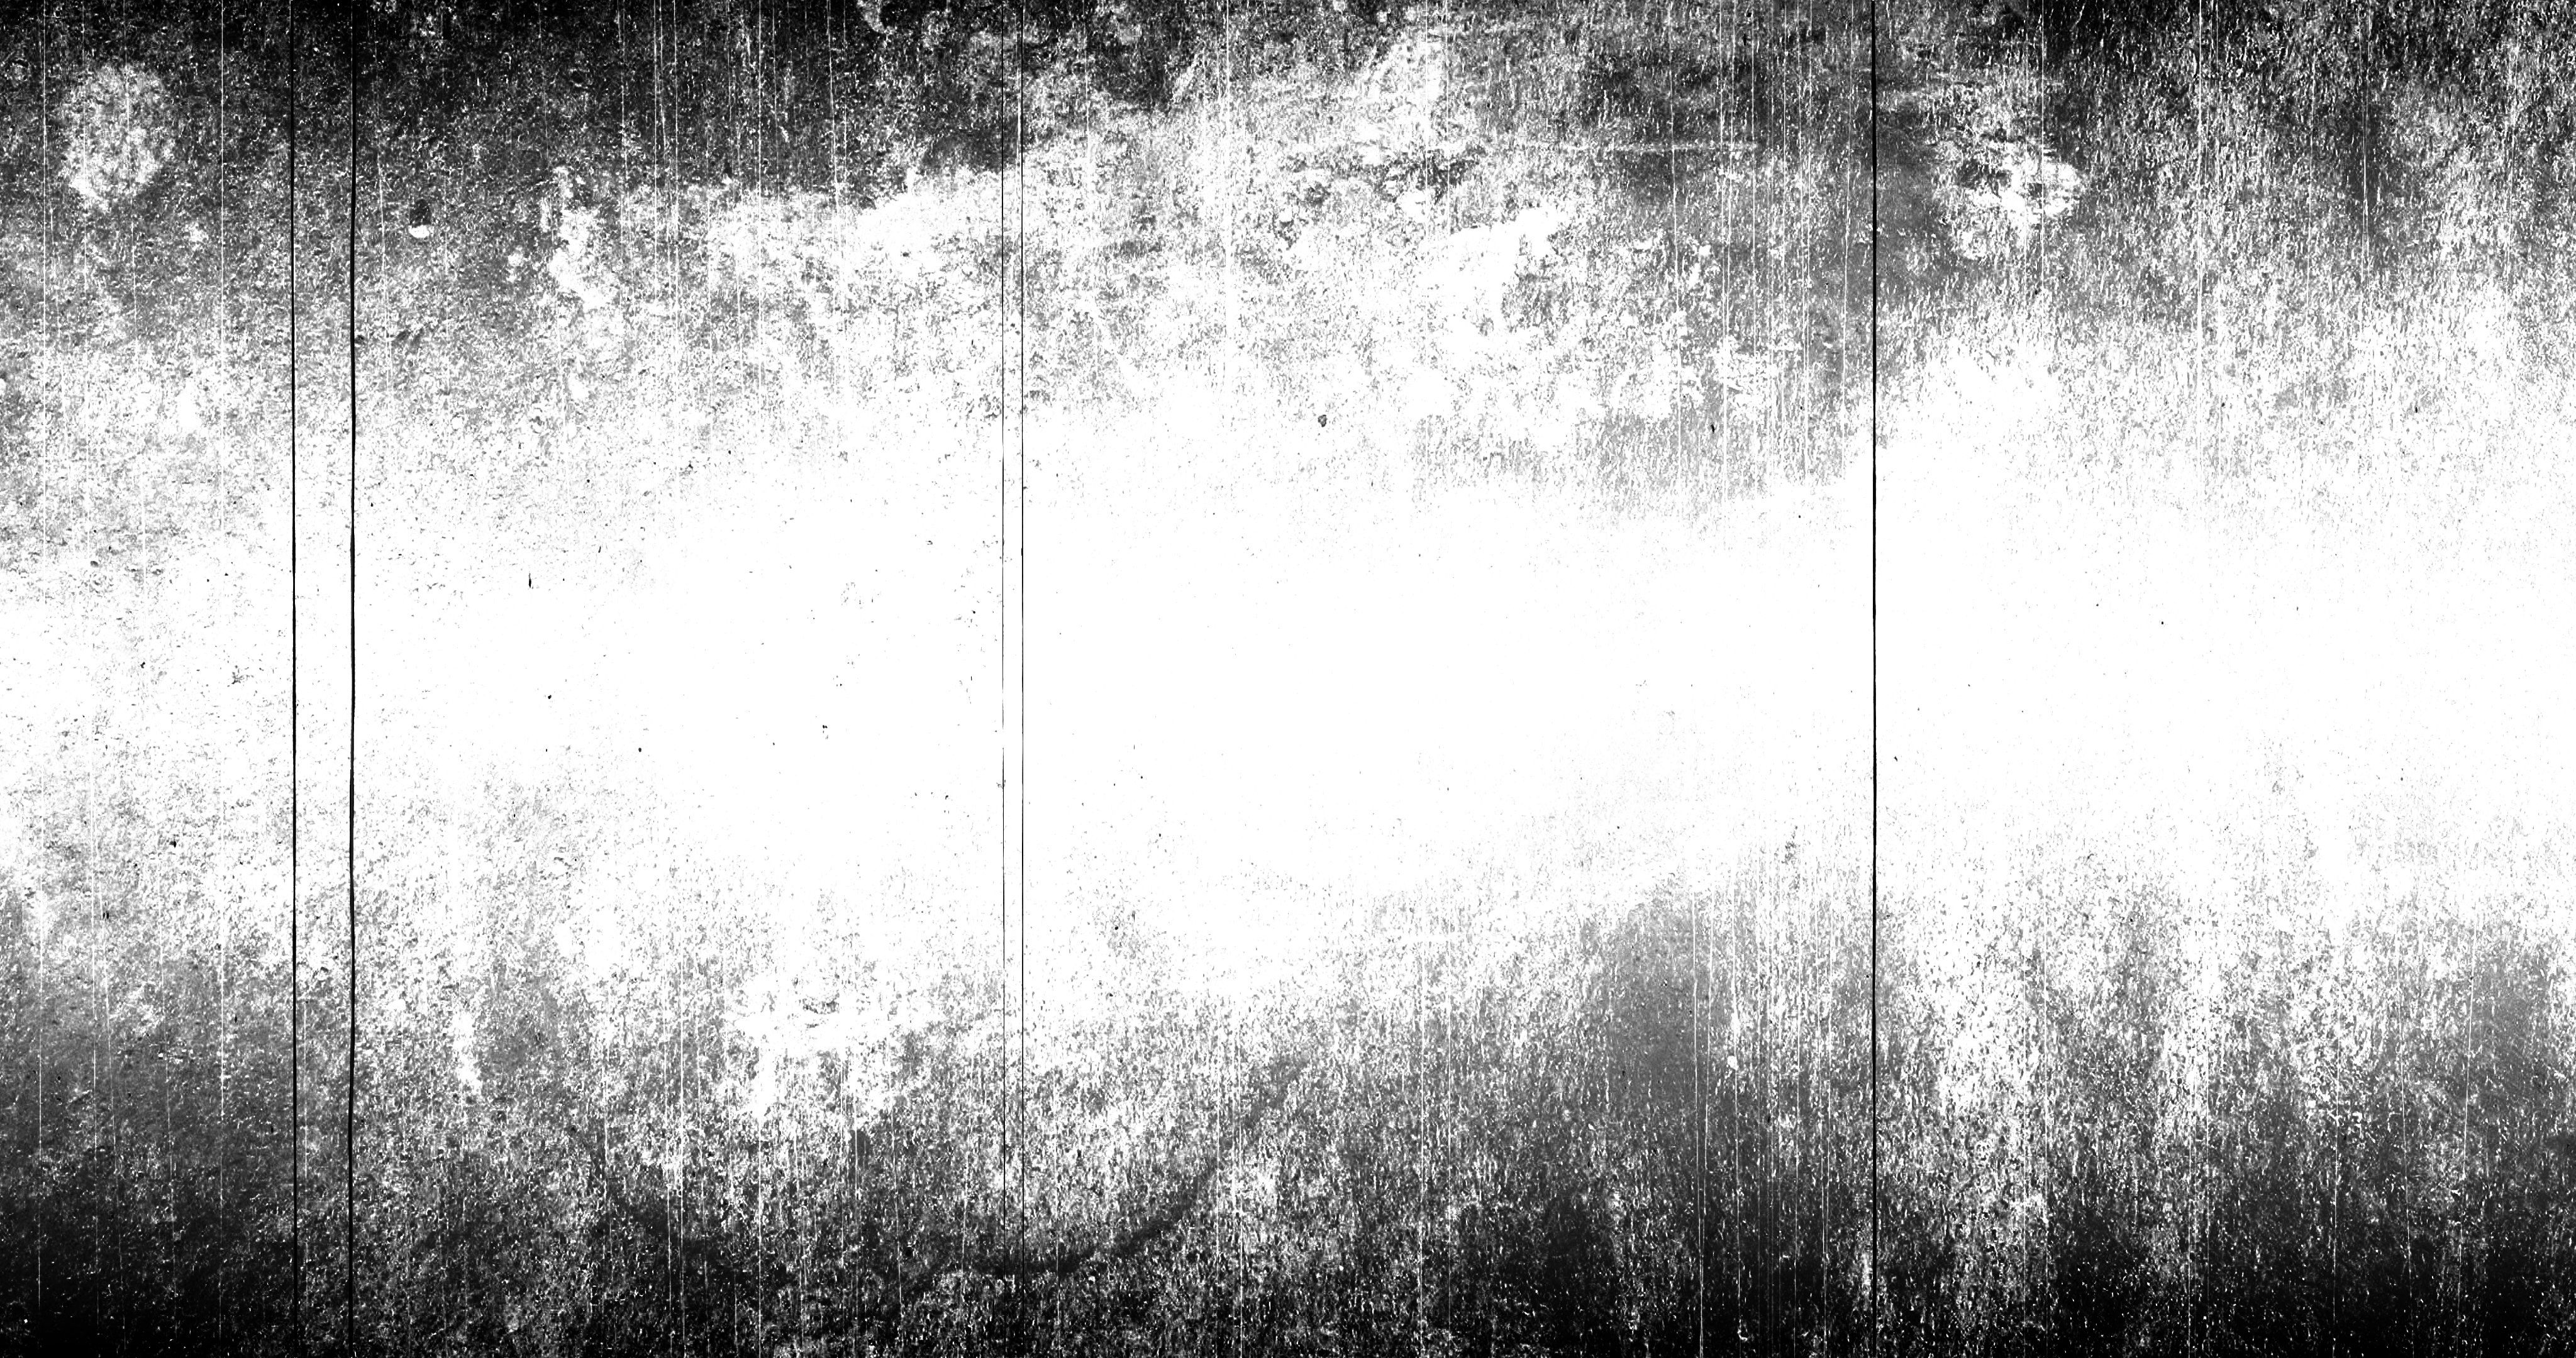 4k Overlay With Old Film Look Destructions Stock Footage Film Overlay Destructions Footage Overlays Abstract Artwork 3d Design